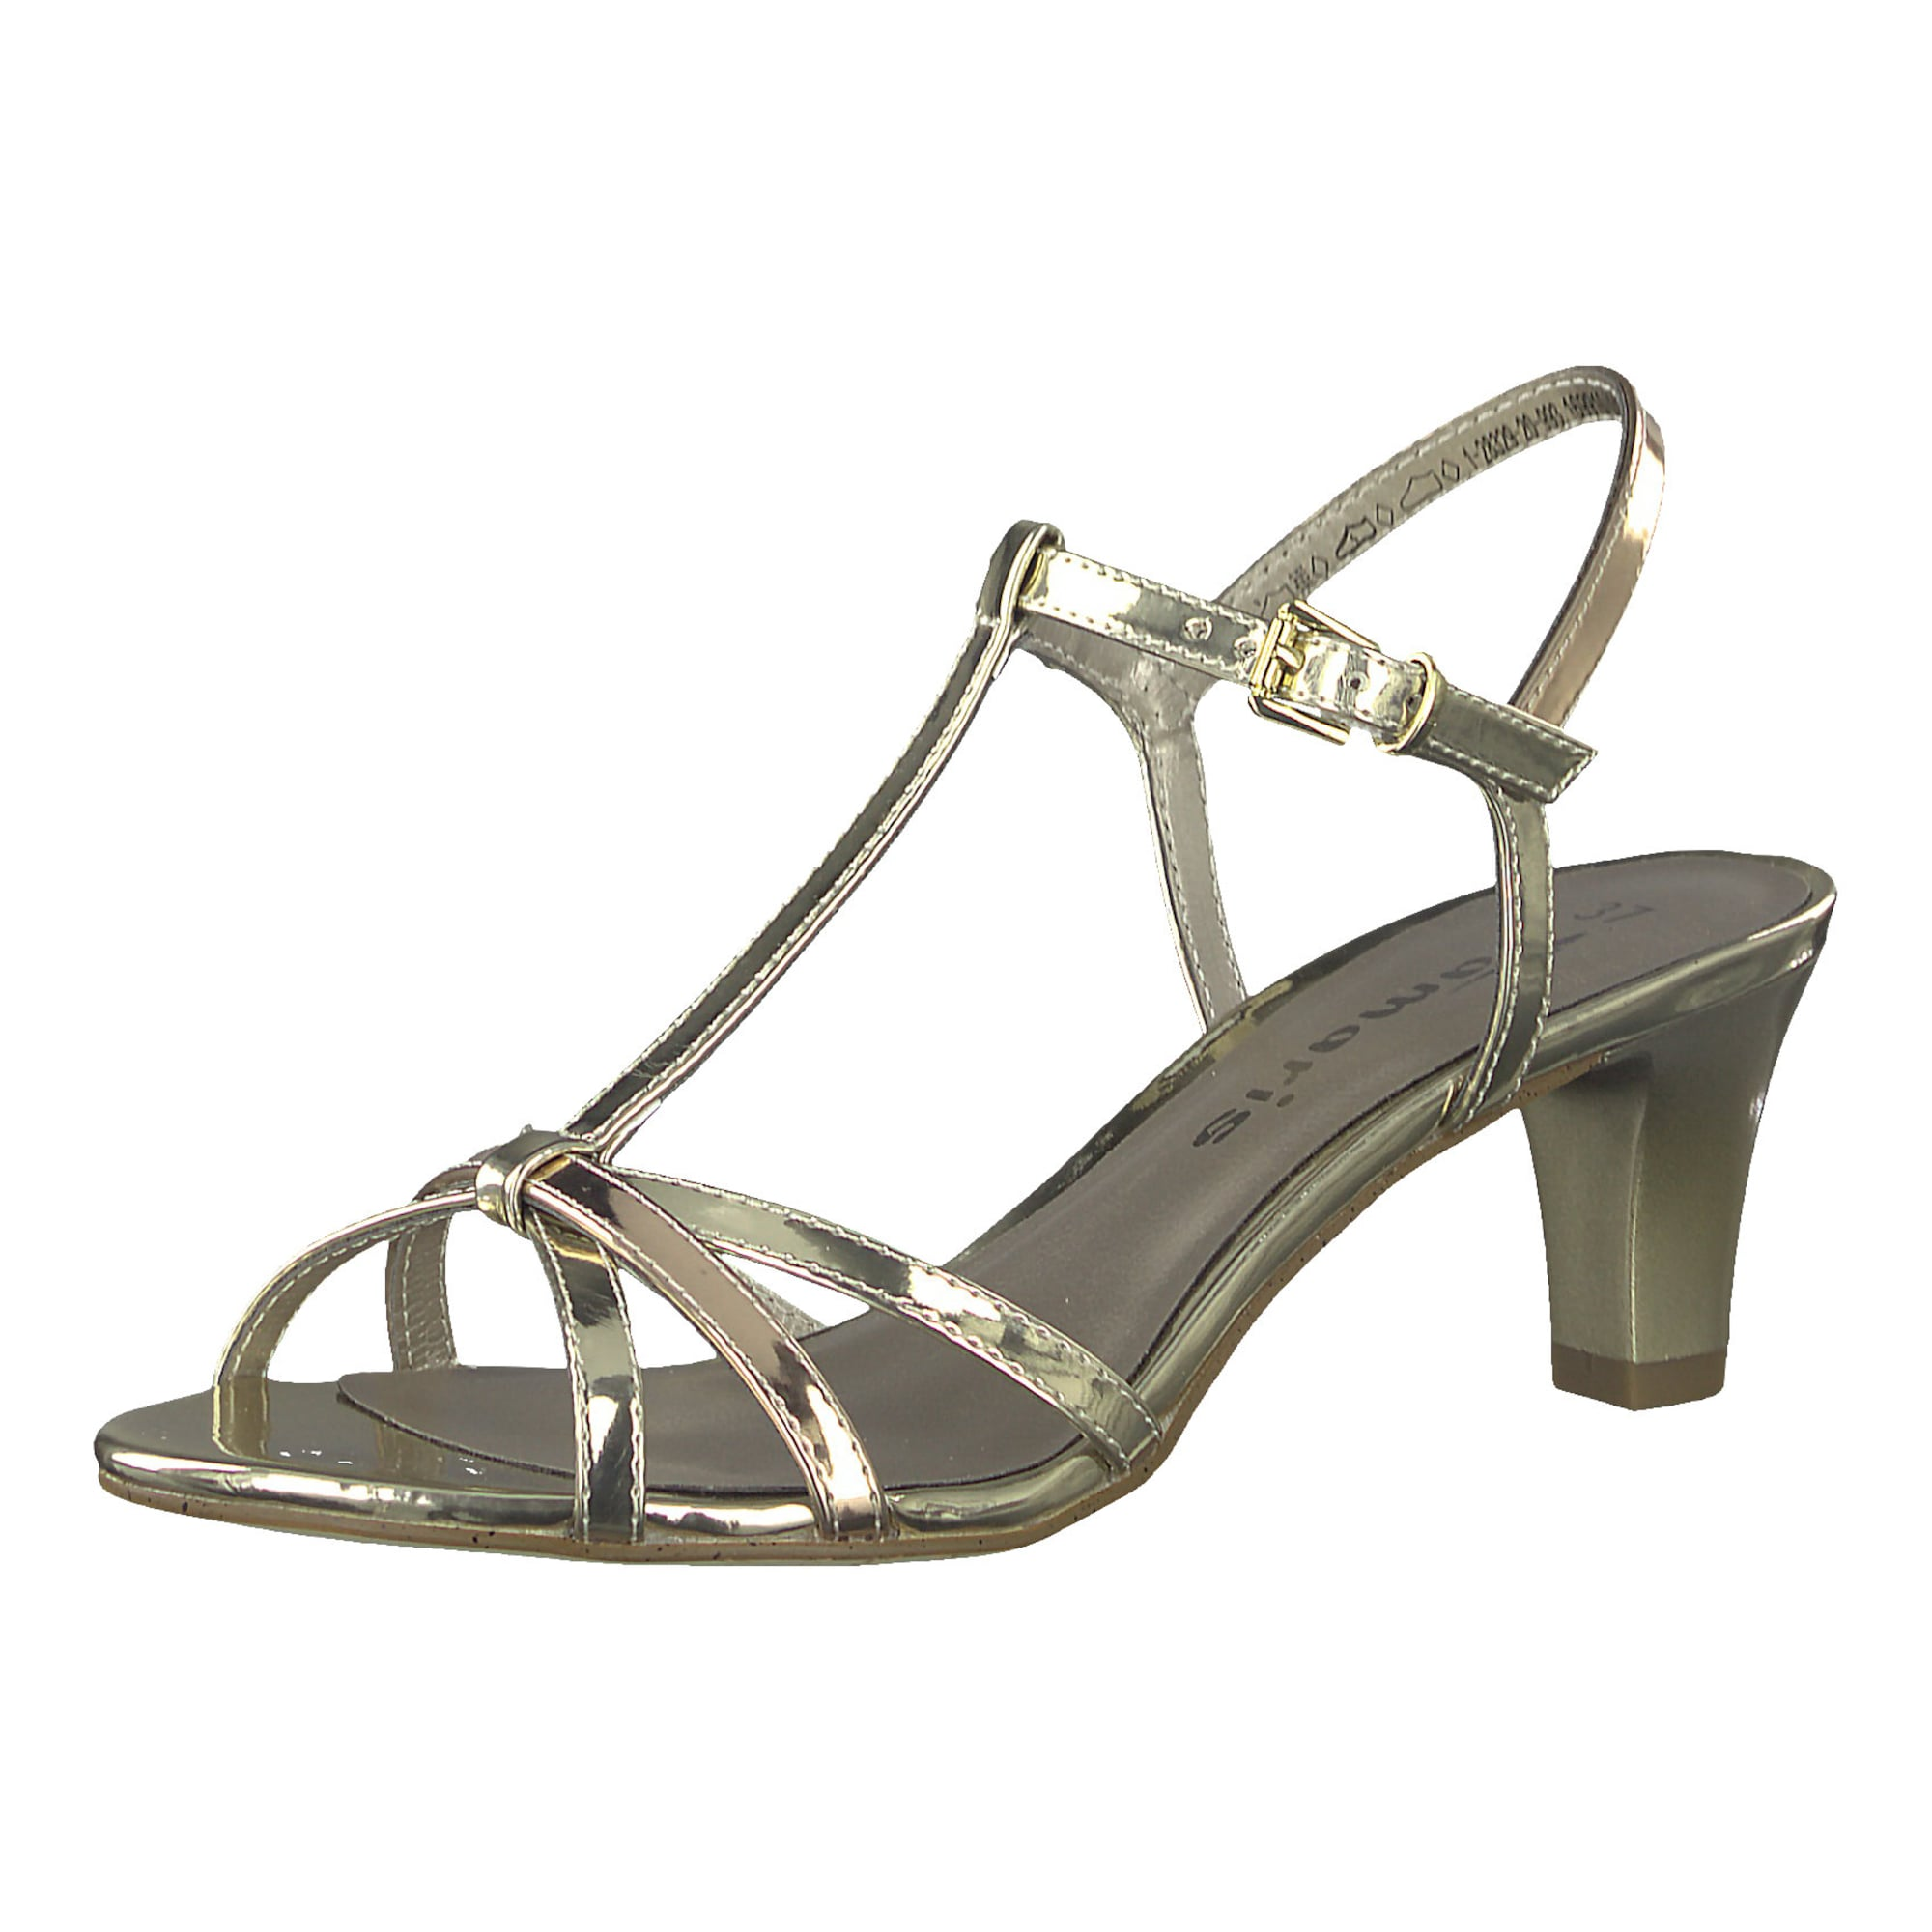 Sanale ´Medium Absatz Sandal´